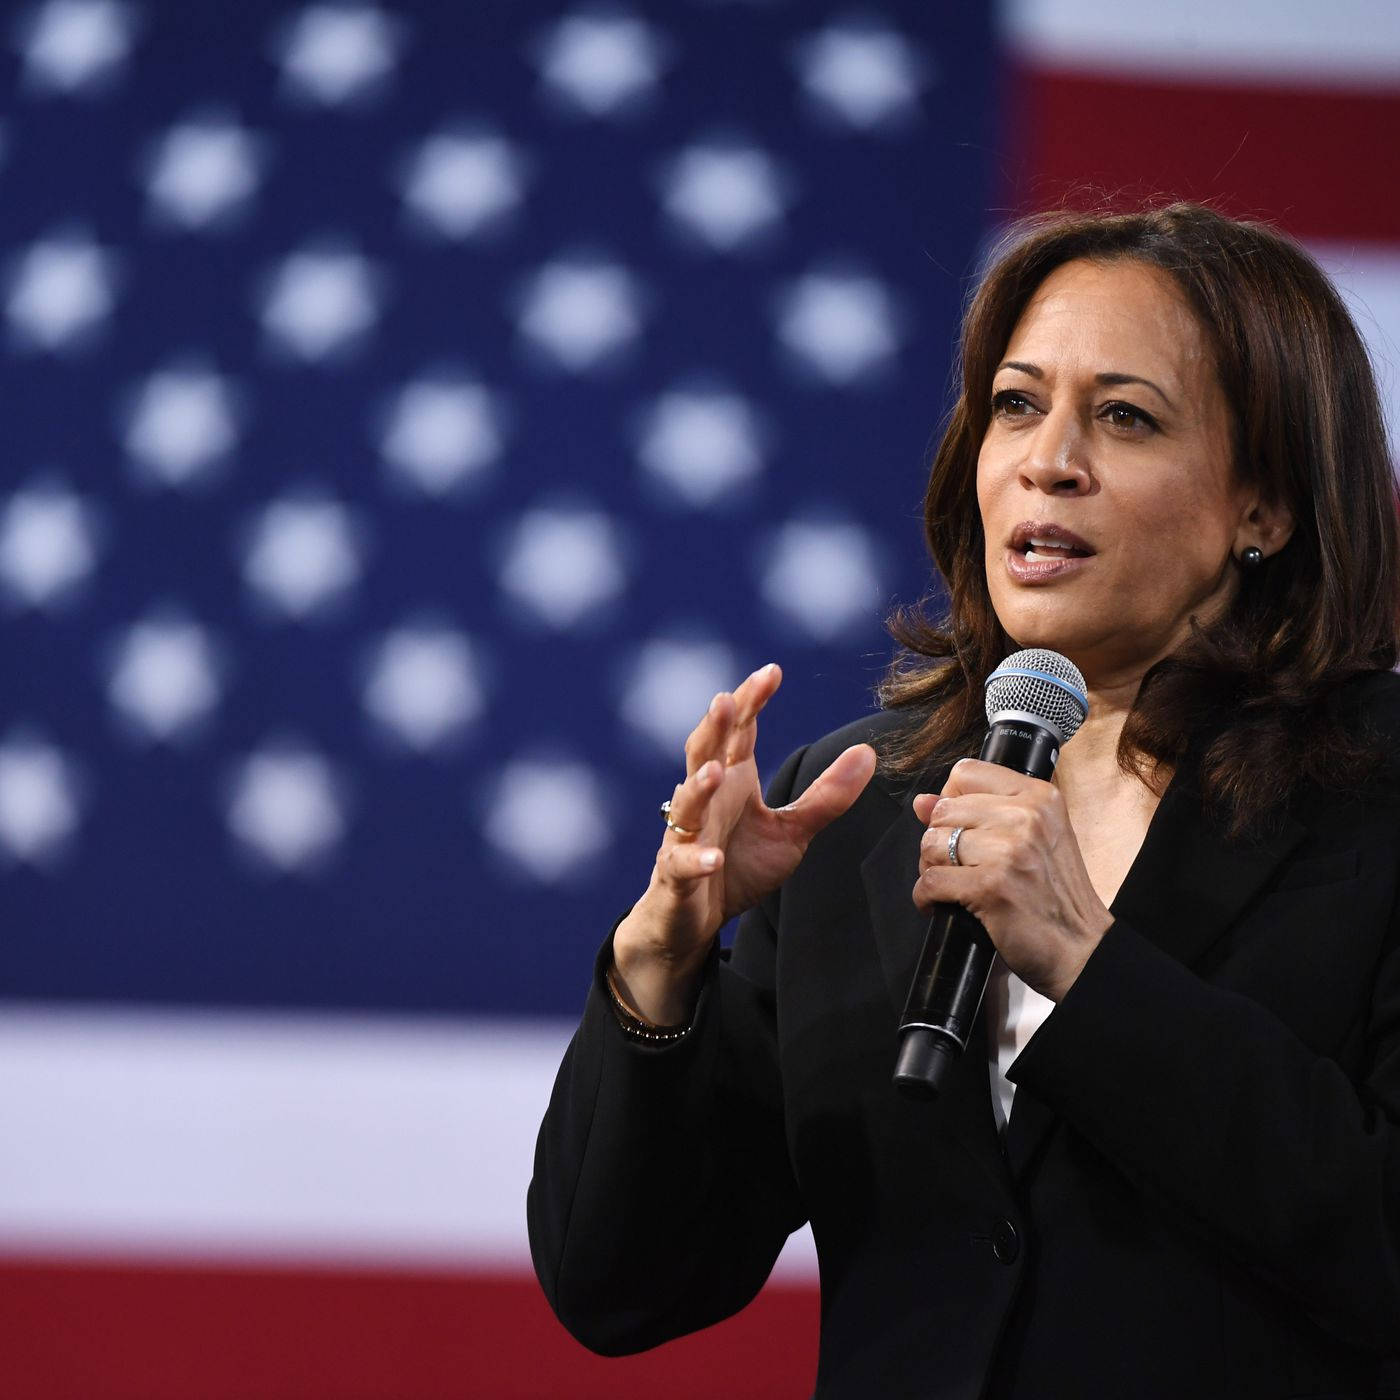 Kamala Harris Vows To Hold Social Media Platforms Responsible For Hate The Verge